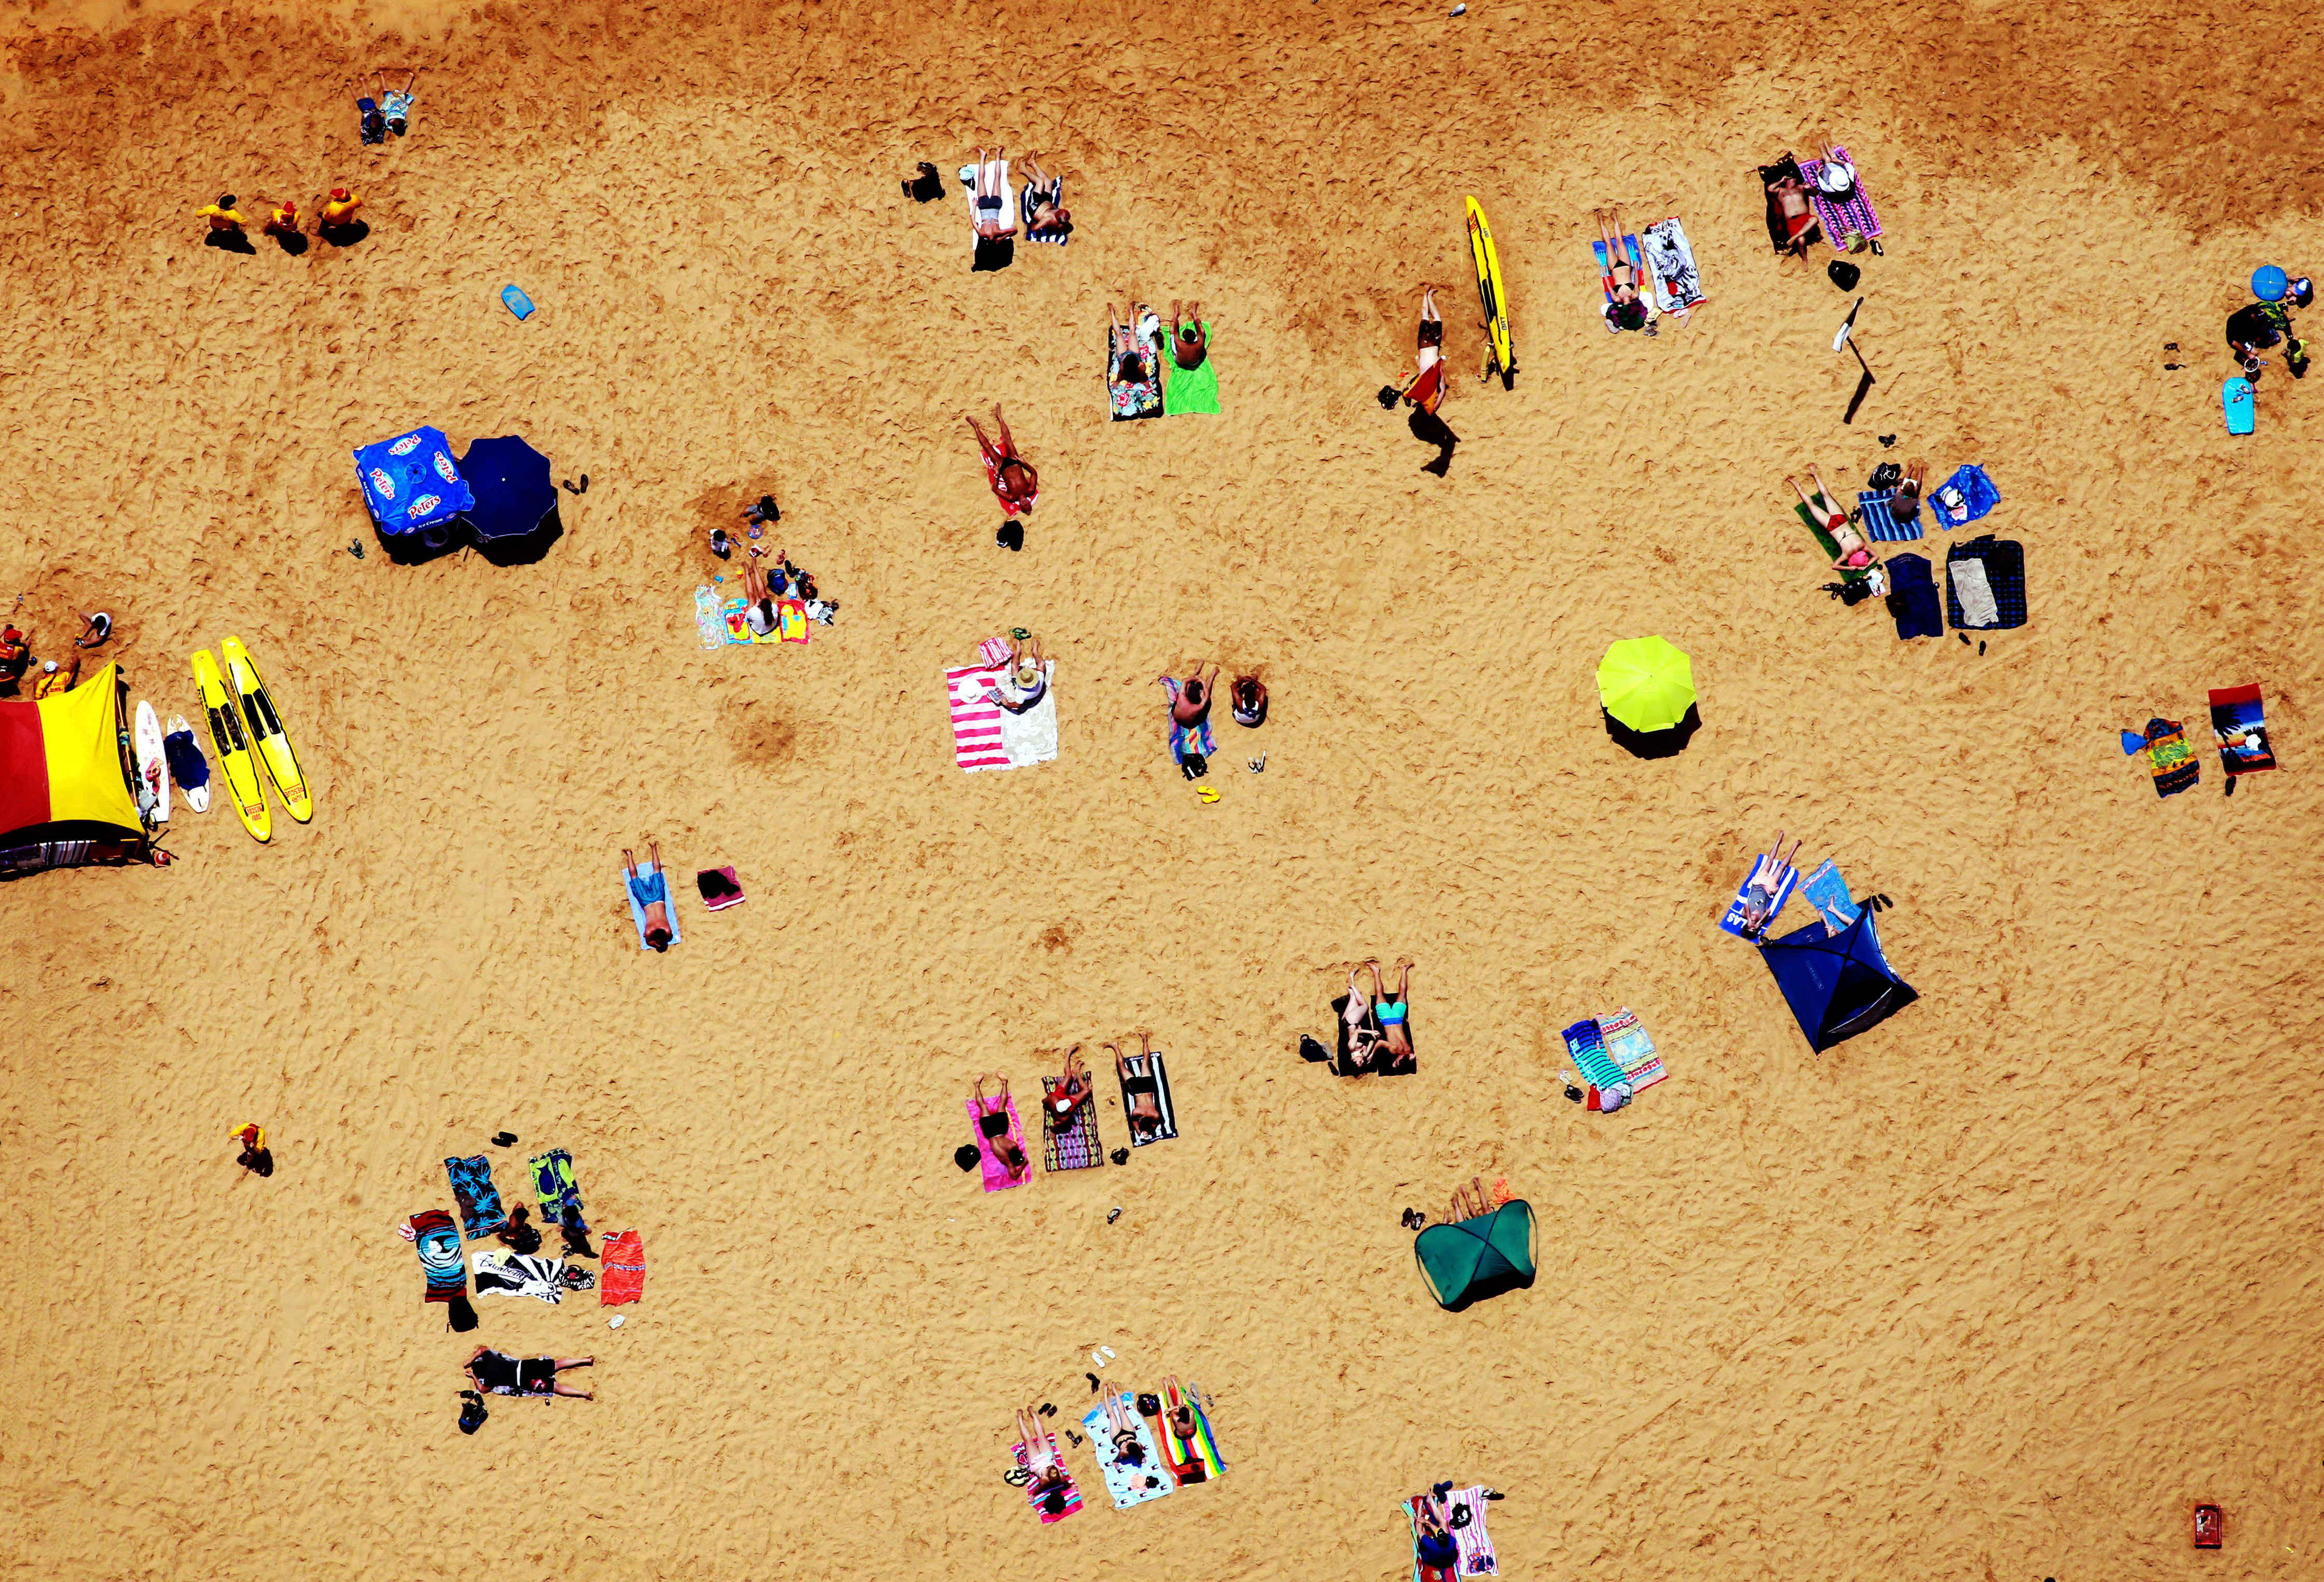 Beachgoers relax at Terrigal Beach as summer arrives on the Central Coast of New South Wales, Australia, Dec. 1, 2012.